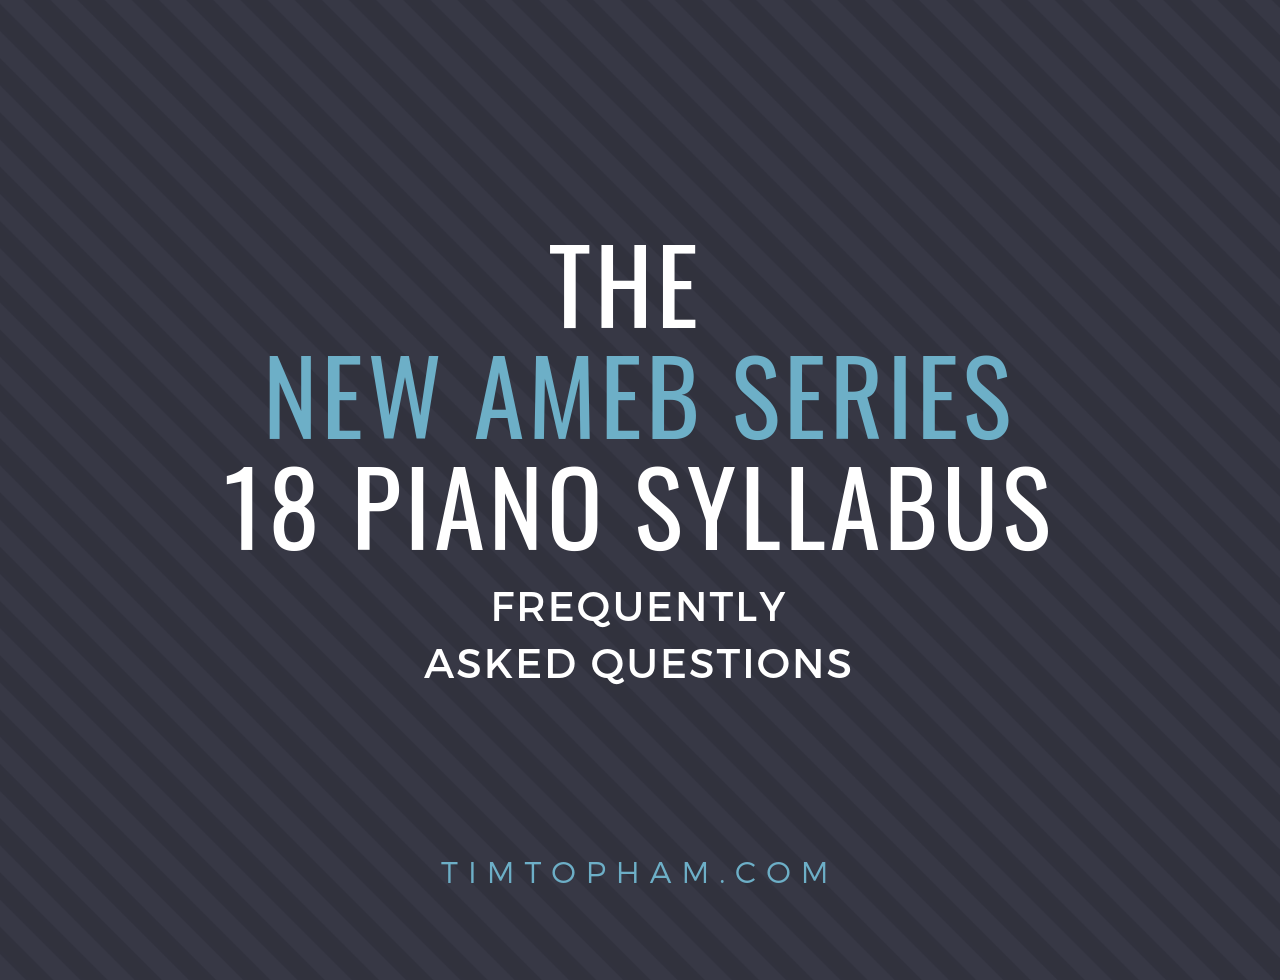 The New AMEB Series 18 Piano Syllabus - Frequently Asked Questions